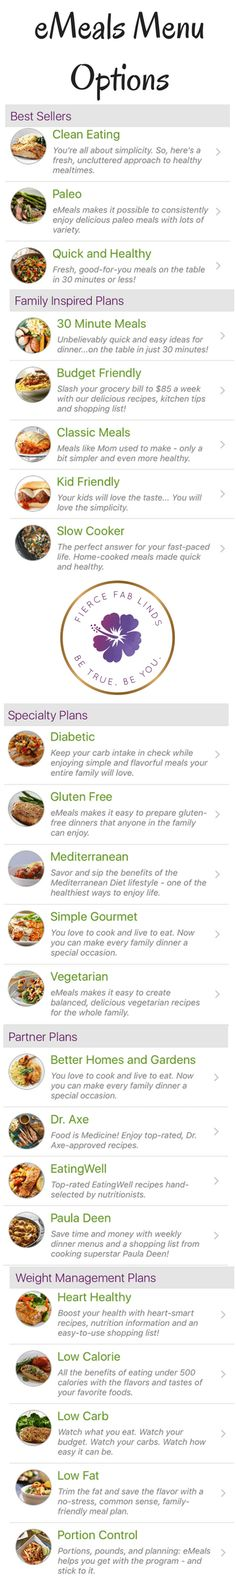 Meal Plan and Grocer